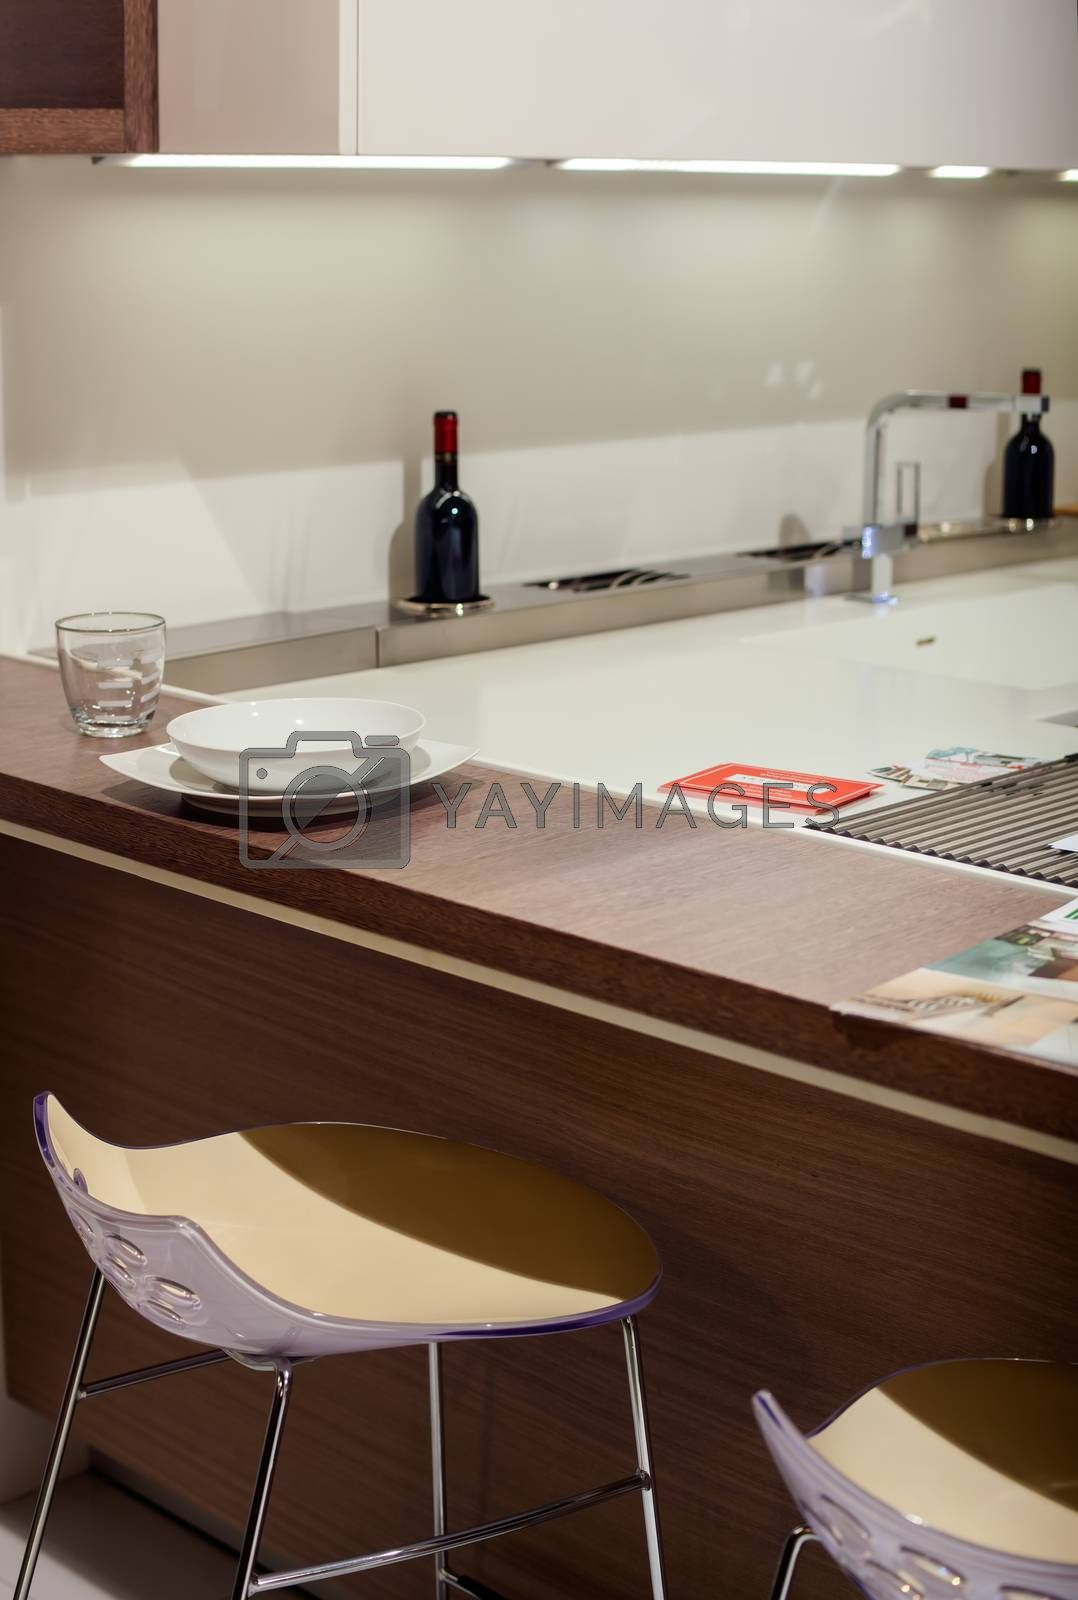 Viev of forniture for domestic kitchen